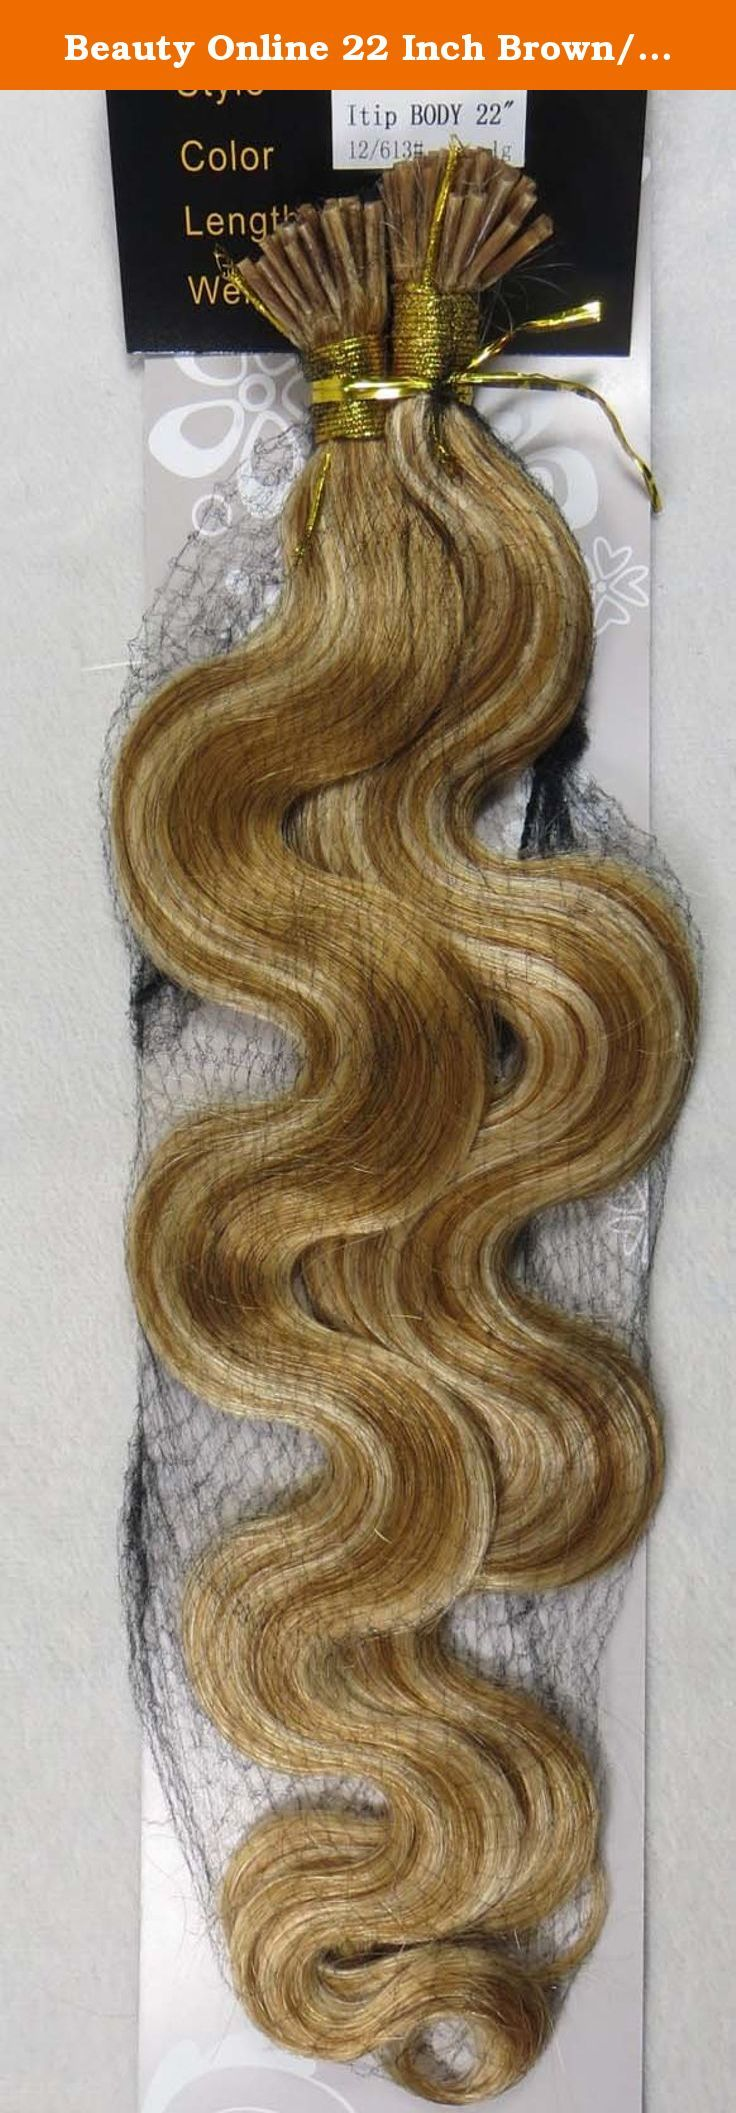 Beauty Online 22 Inch Brown/blonde (#12/613) 100s Body Wave Stick I Tip Fusion Human Hair Extensions - 100% Remy Human Hair Extensions. 100% remy human hair extensions and very competitive price. stick tip/I tip hair Can be washed, heat styled. High quality, tangle free, silky soft. 200-300strands are recommended for whole head. THERE ARE ANOTHER COLOURS AND SIZES CAN BE CHOSEN IN OUR SHOP.